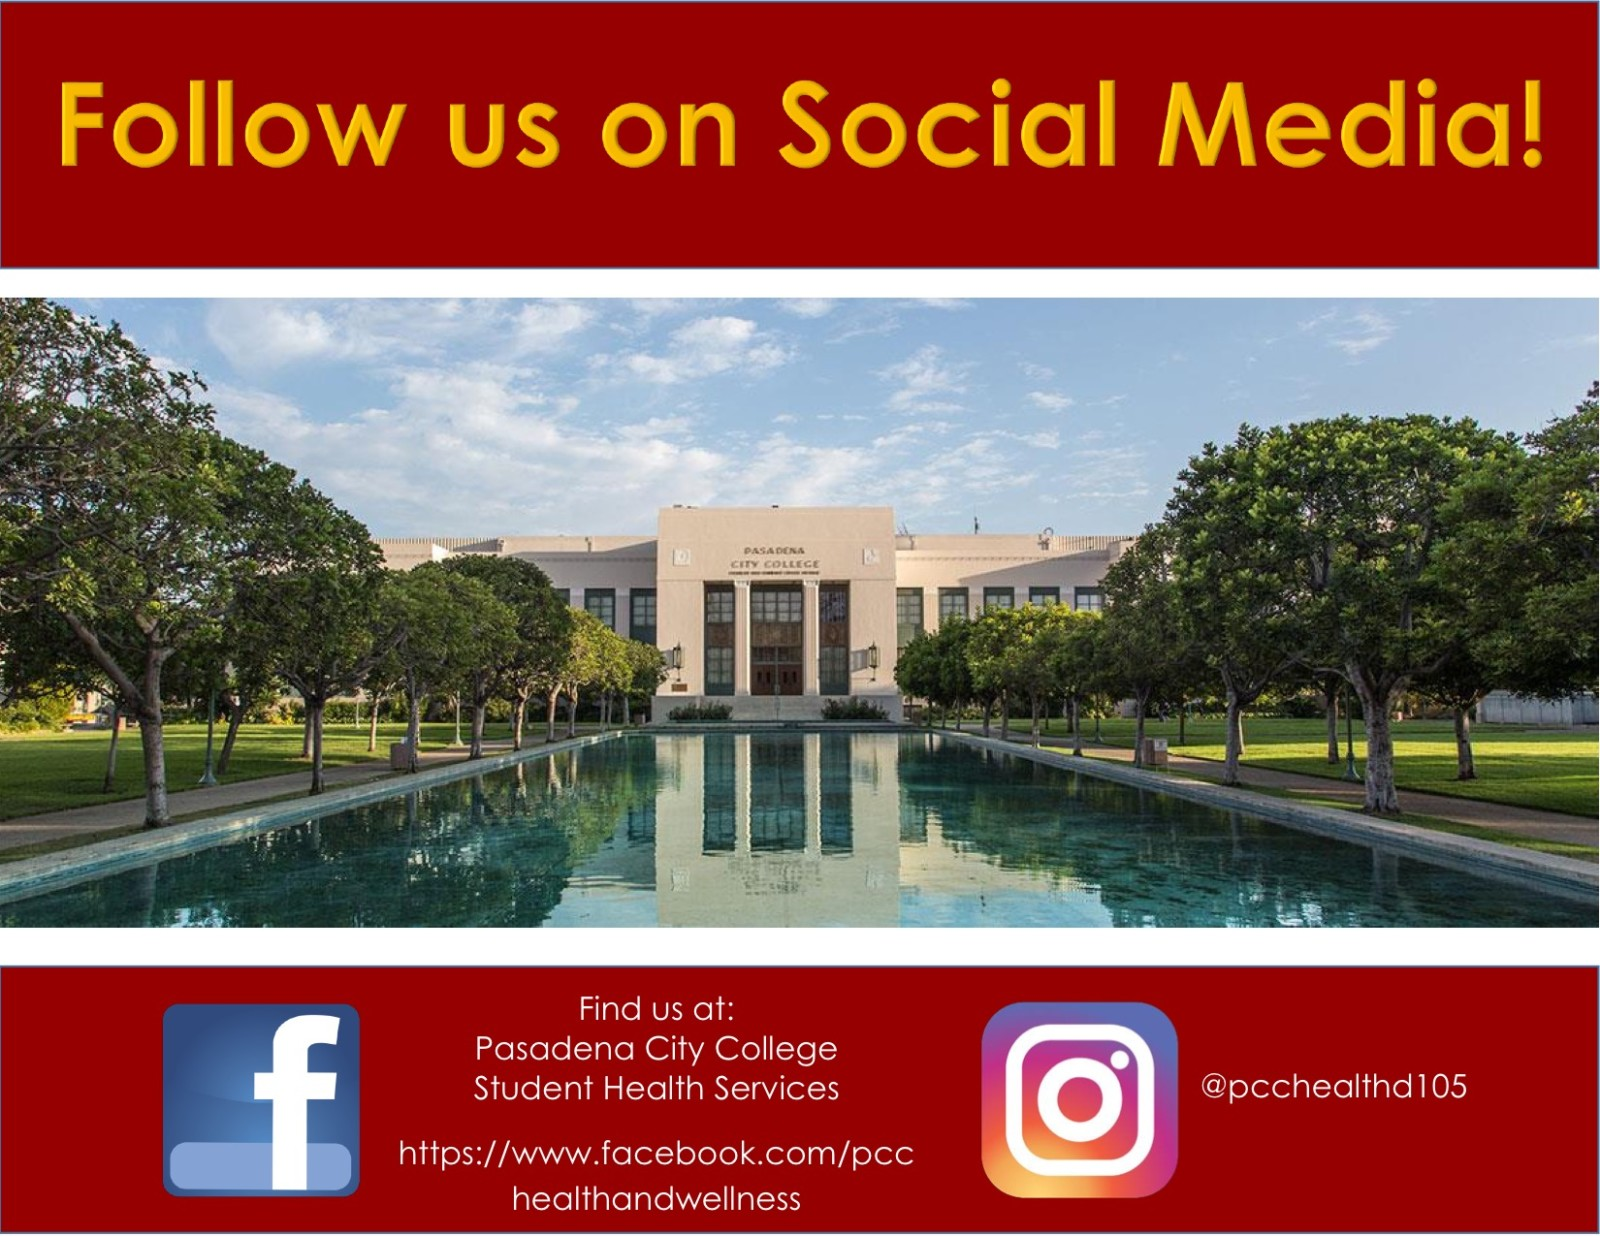 MAKE THE Find us at: Pasadena City College Student Health Services @pcchealthd105 https://www.facebook.com/pcc healthandwellness